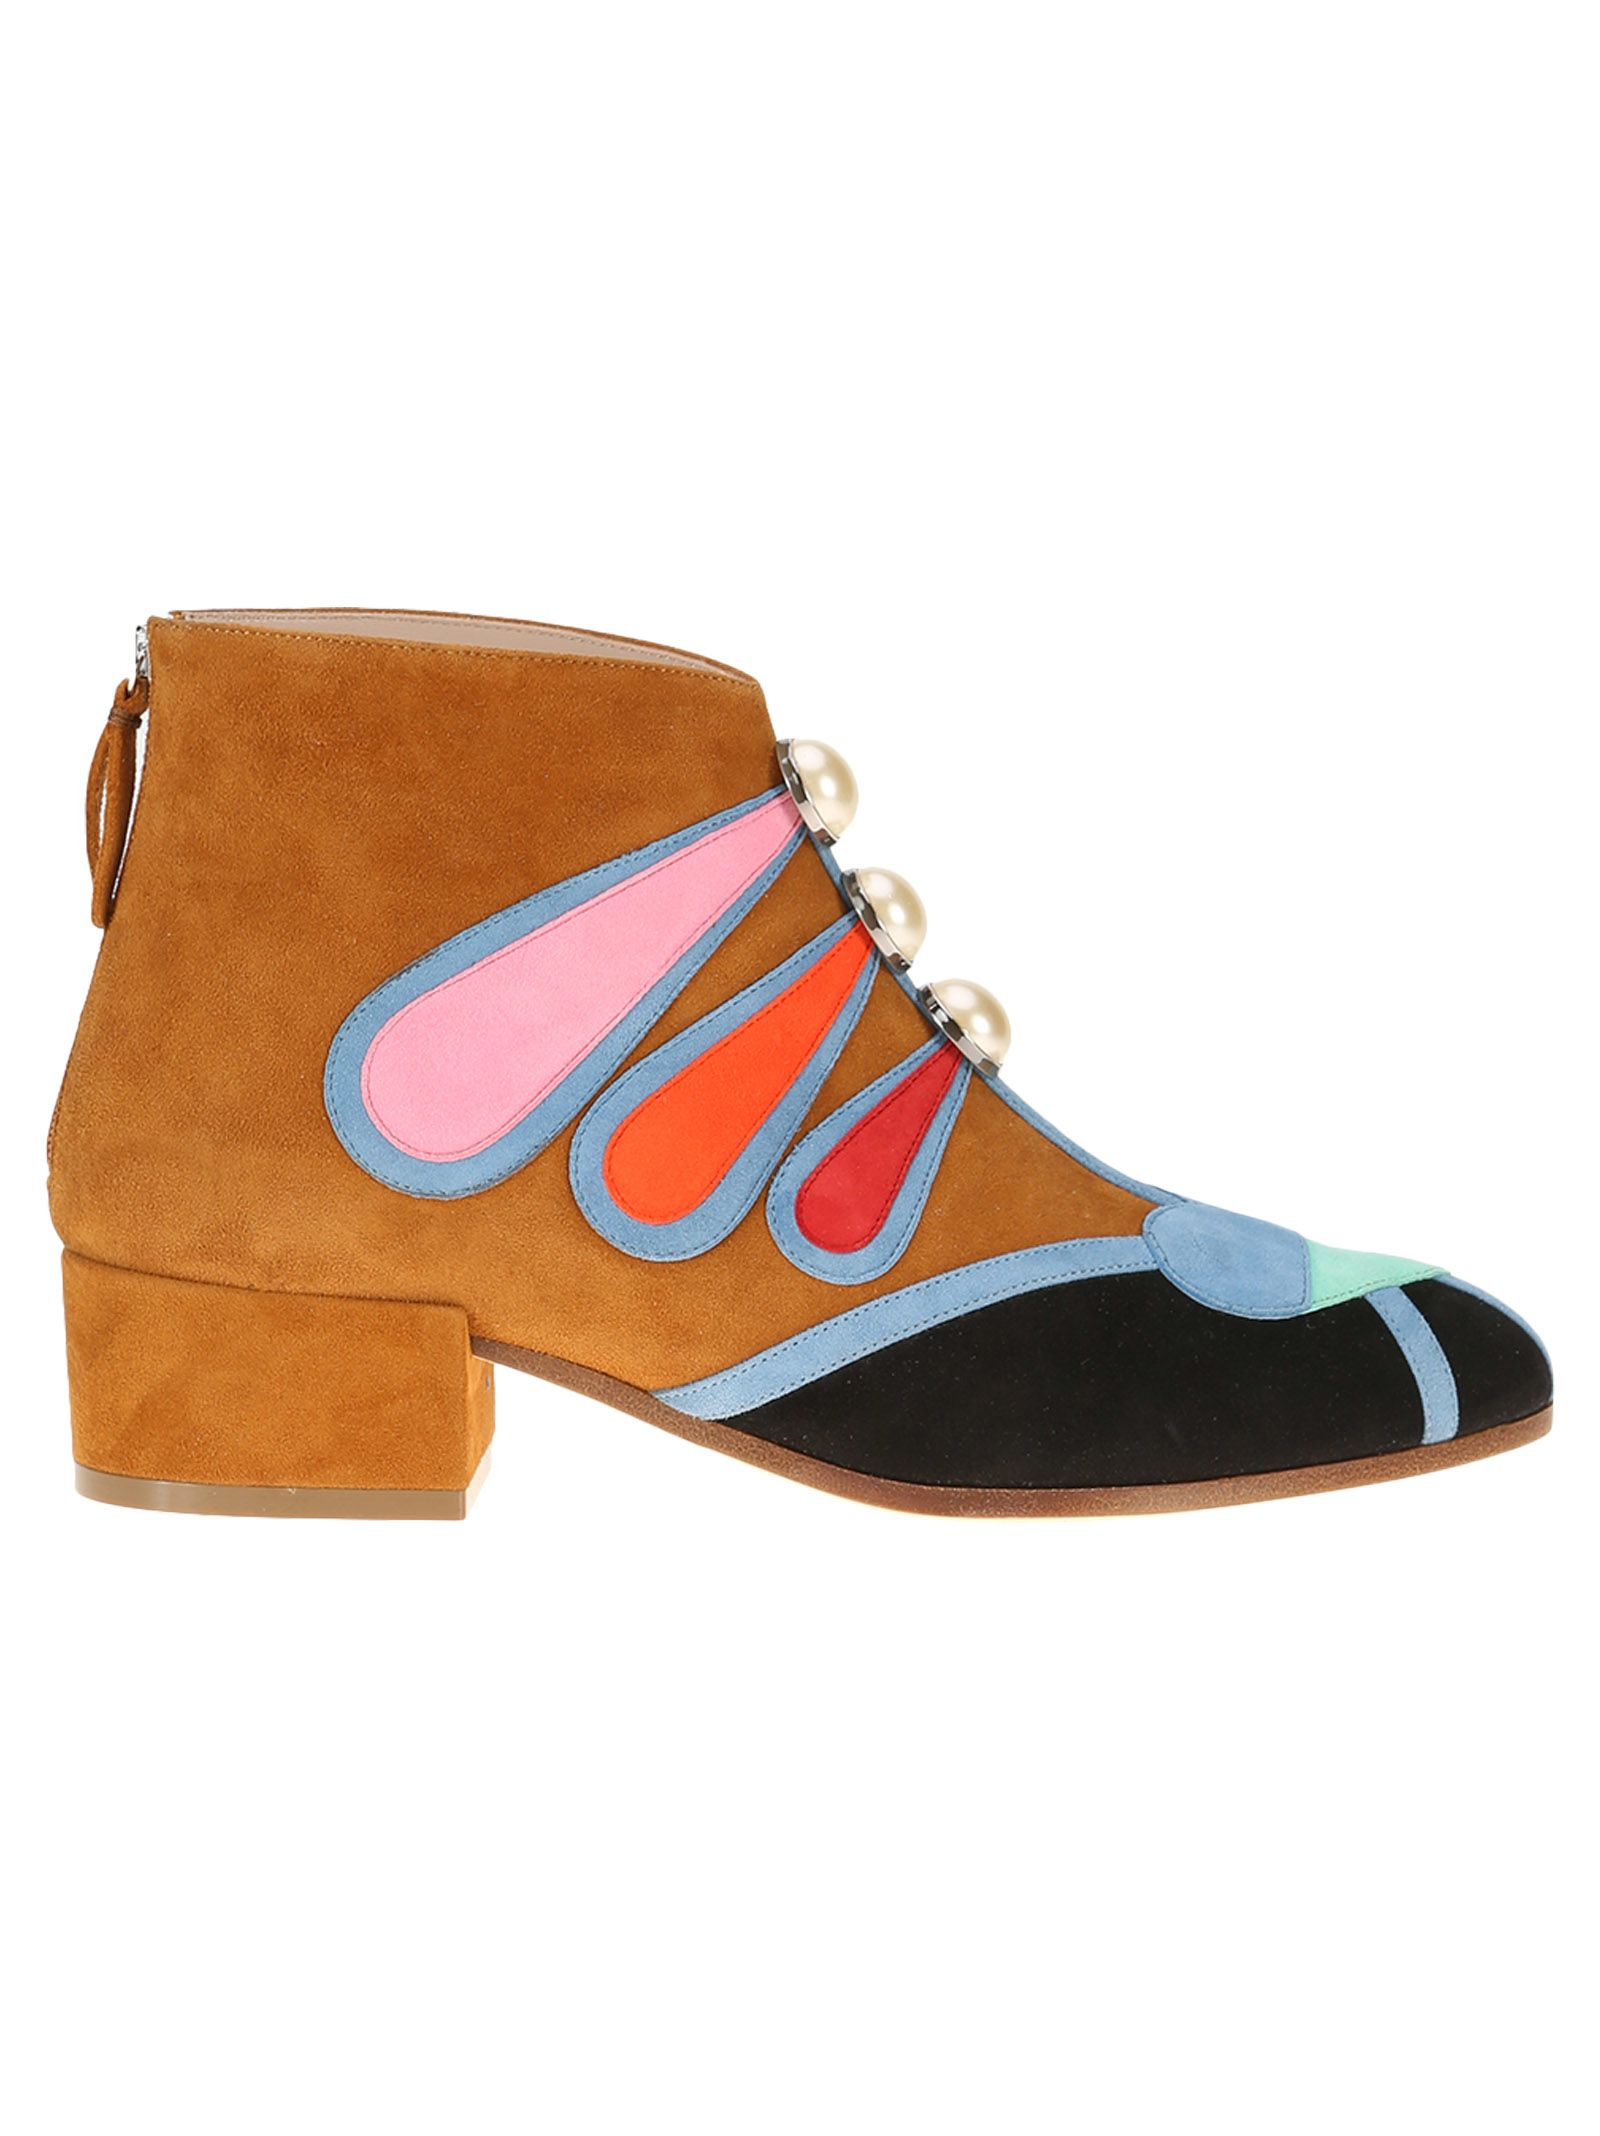 PAULA CADEMARTORI Ankle boots affordable sale free shipping outlet new extremely online discount sast GNVH1DRR